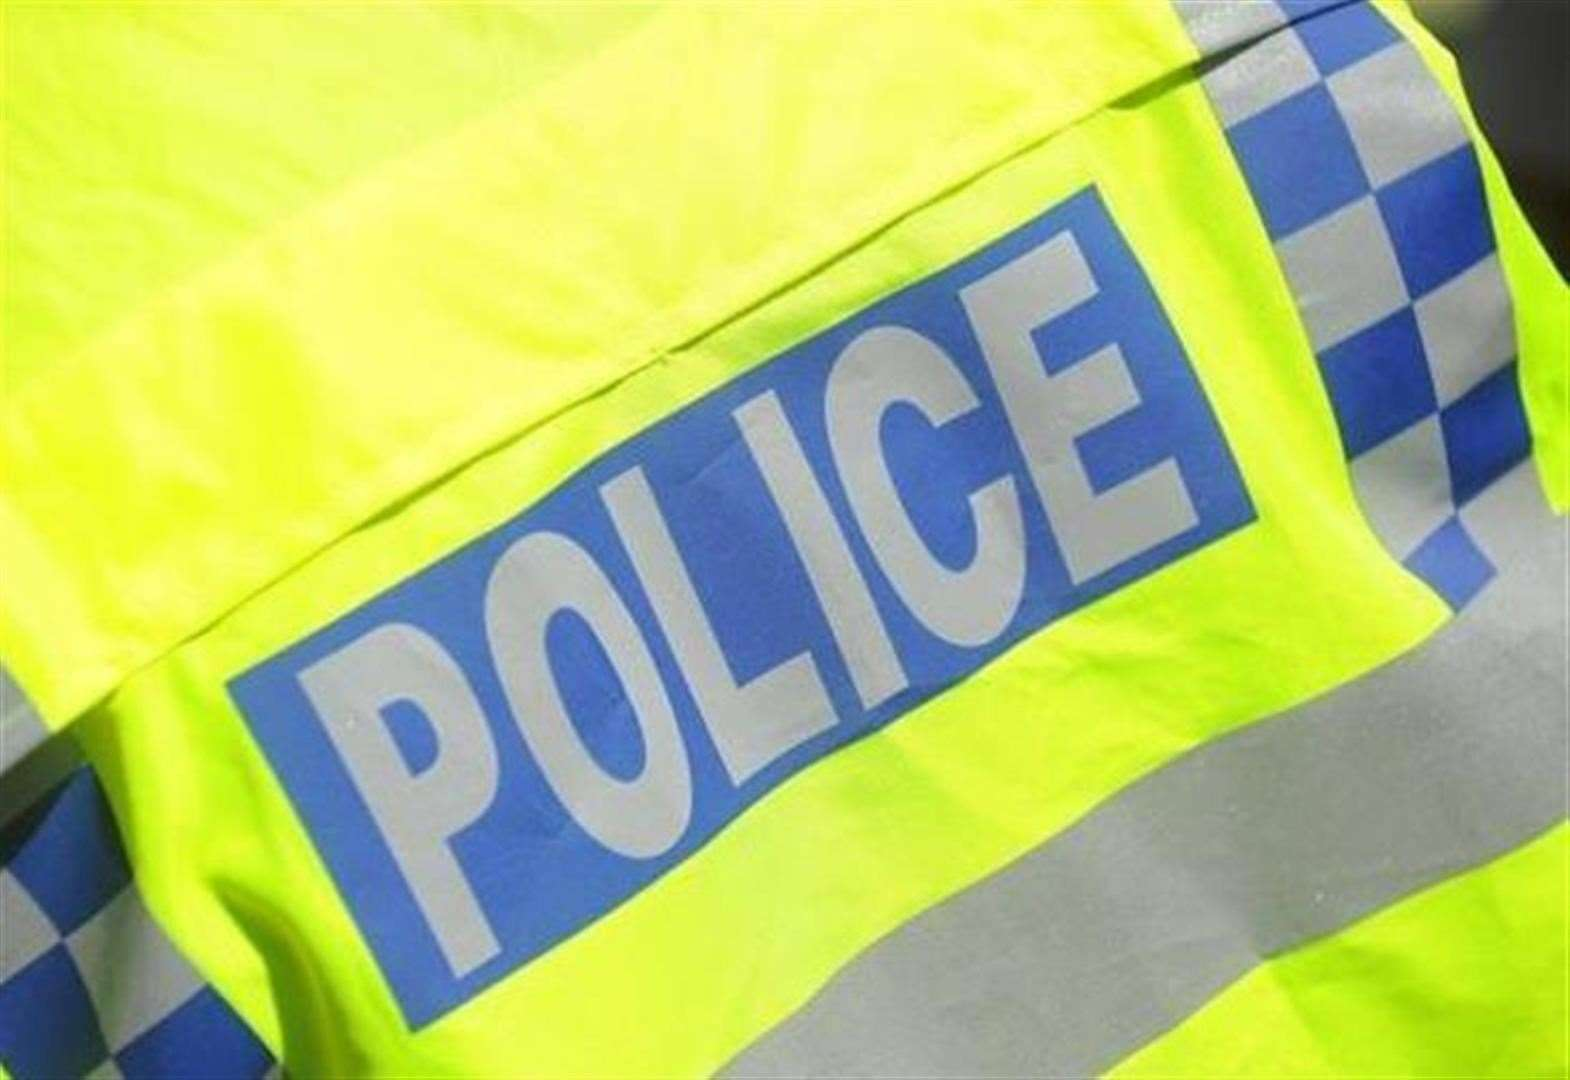 Breckland Police said eight youths were arrested in Swaffham with six due to appear in court